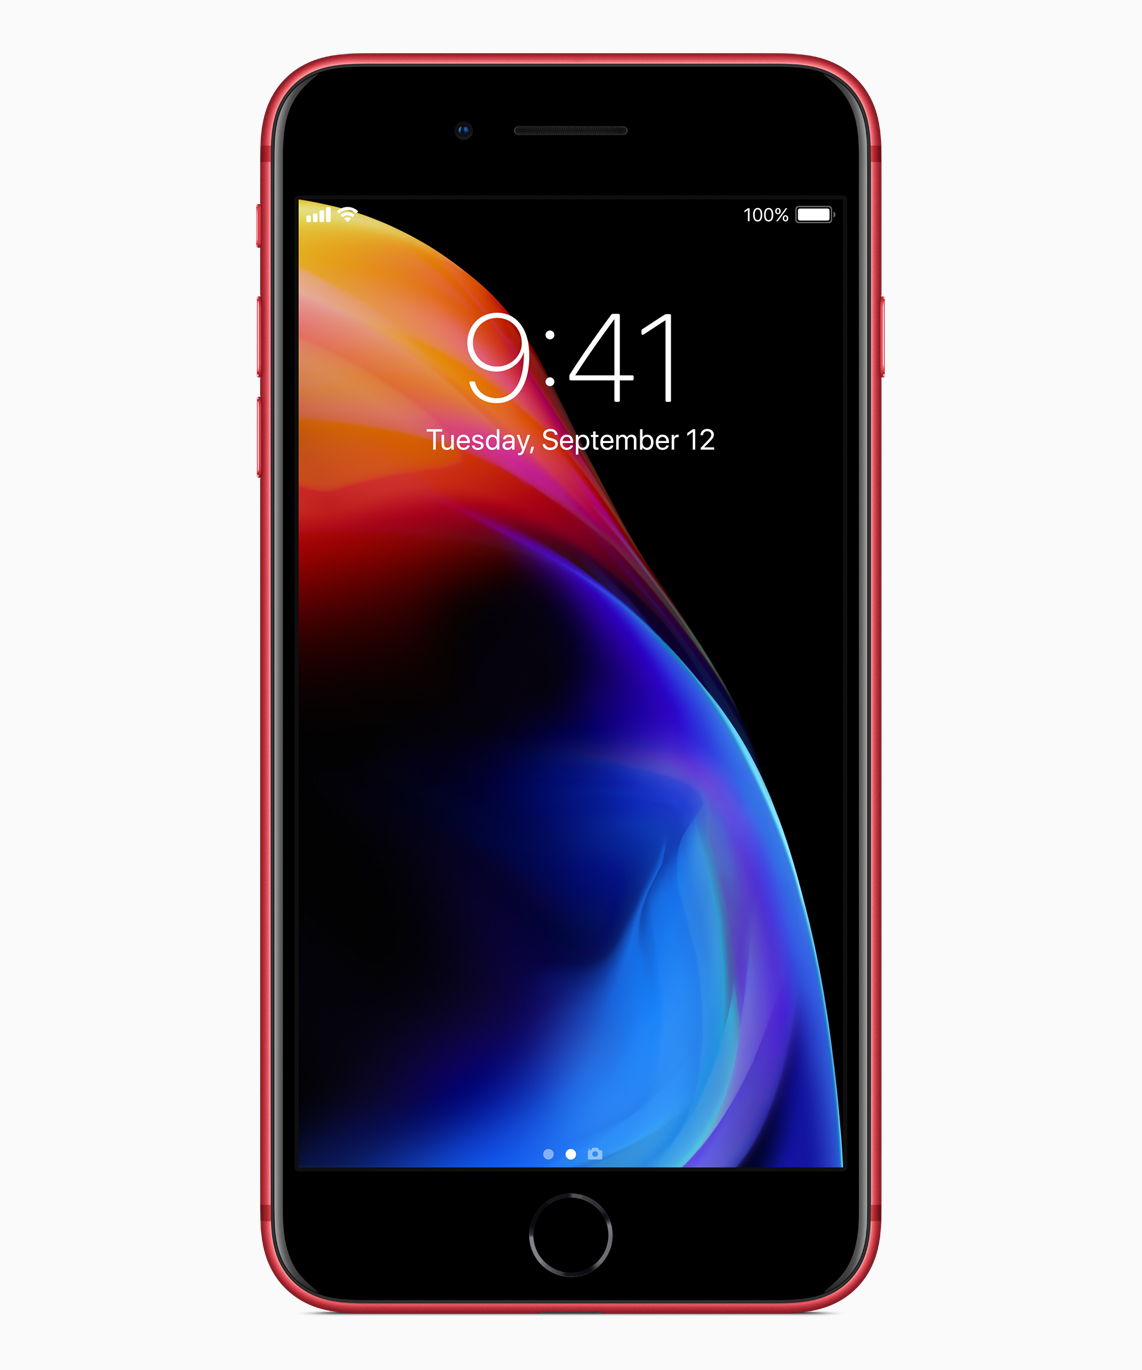 iPhone8PLUS-PRODUCT-RED_front_041018.jpg